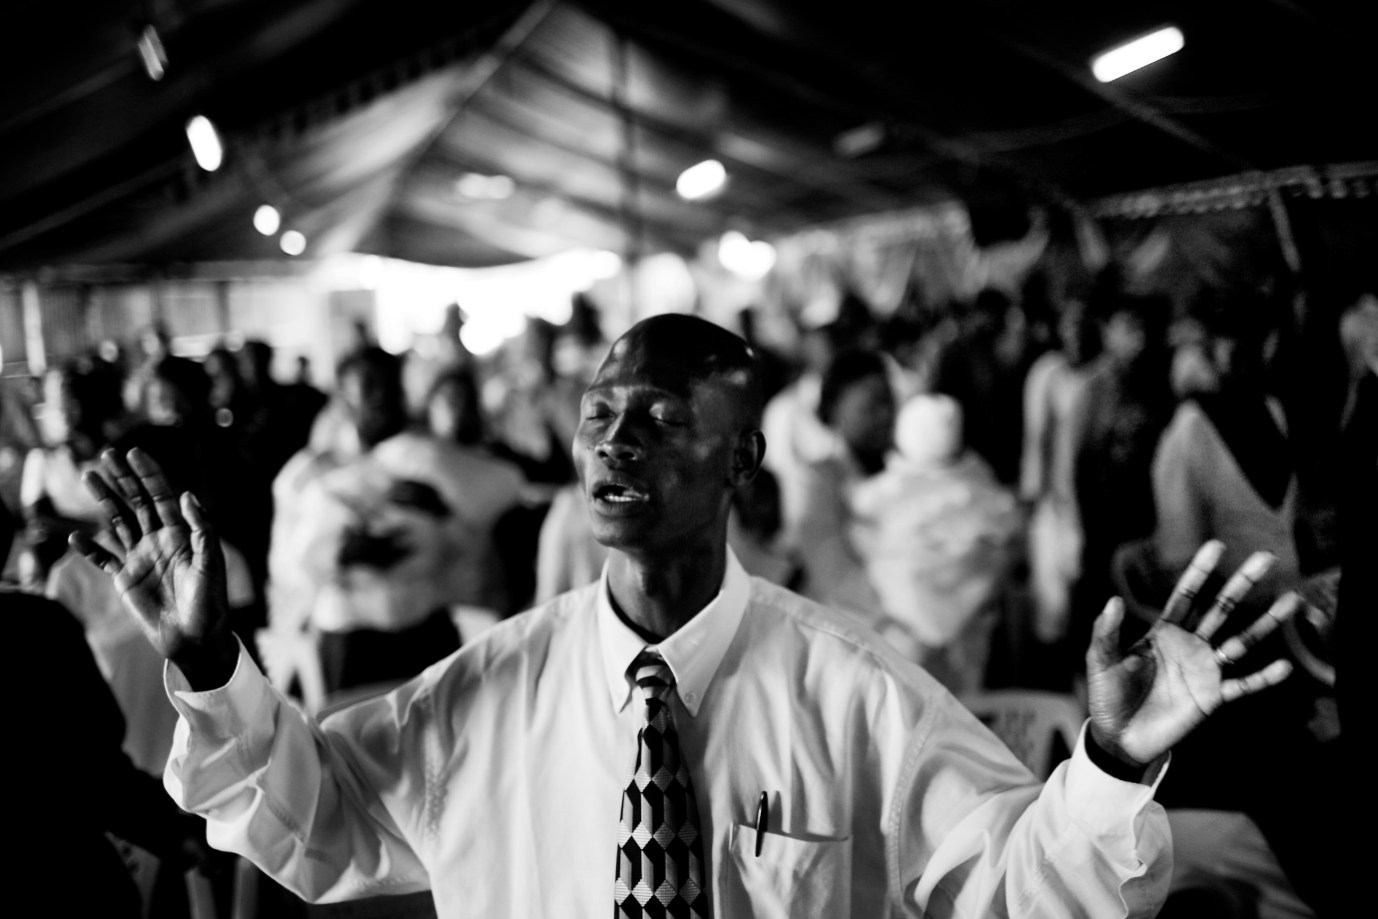 A worshipper in Cathedral of Praise Ministry Church.